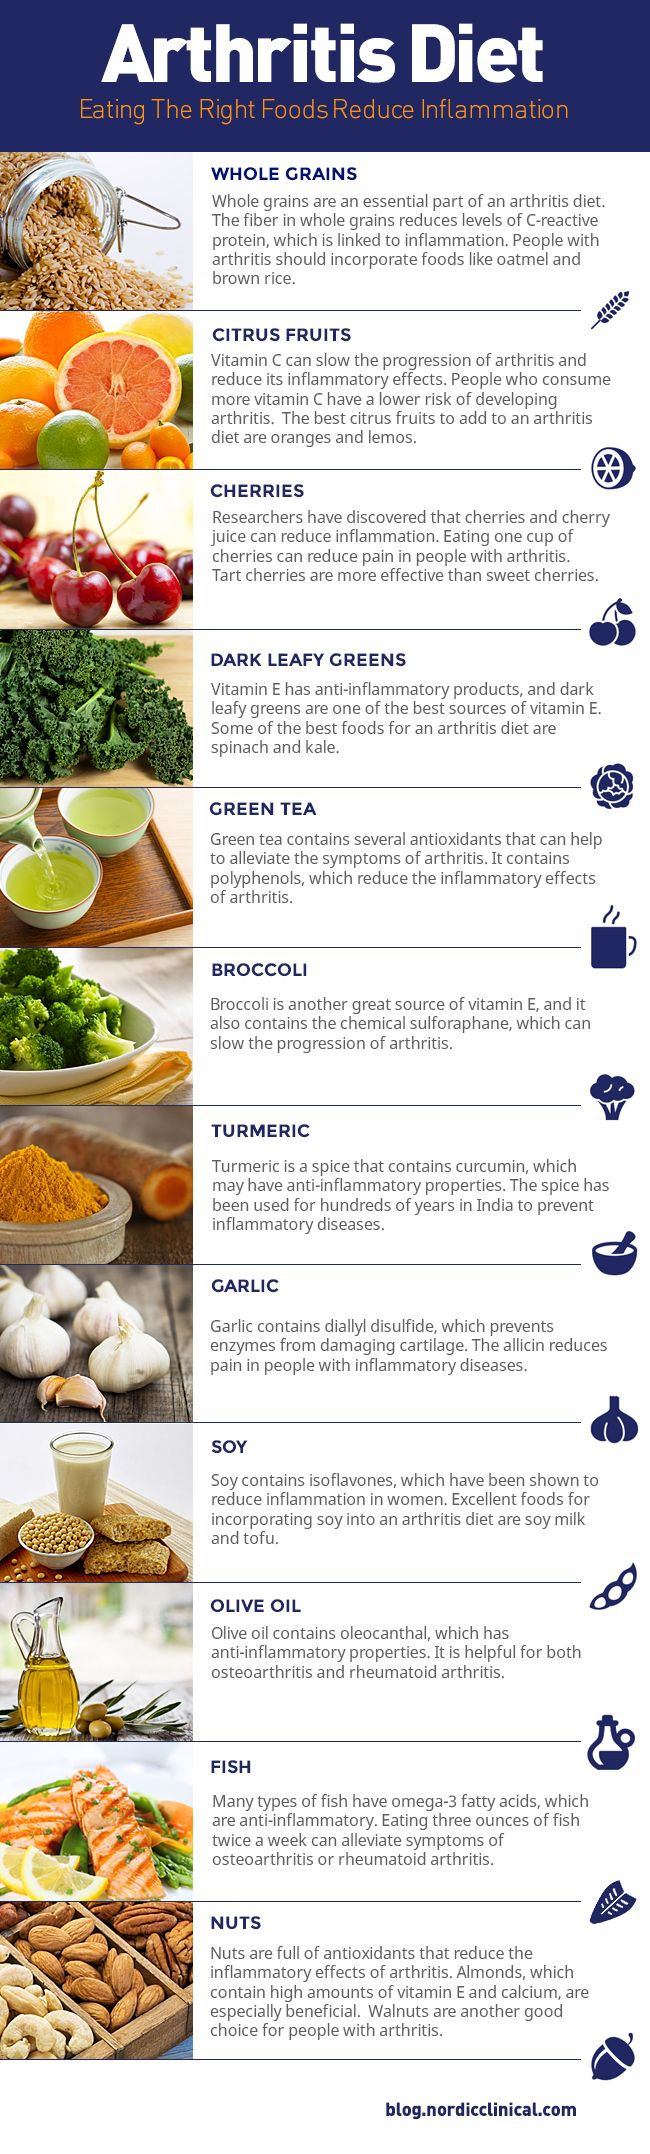 Many foods can reduce pain and inflammation in people who suffer from the condition. Here are 12 foods you should include in your arthritis diet.